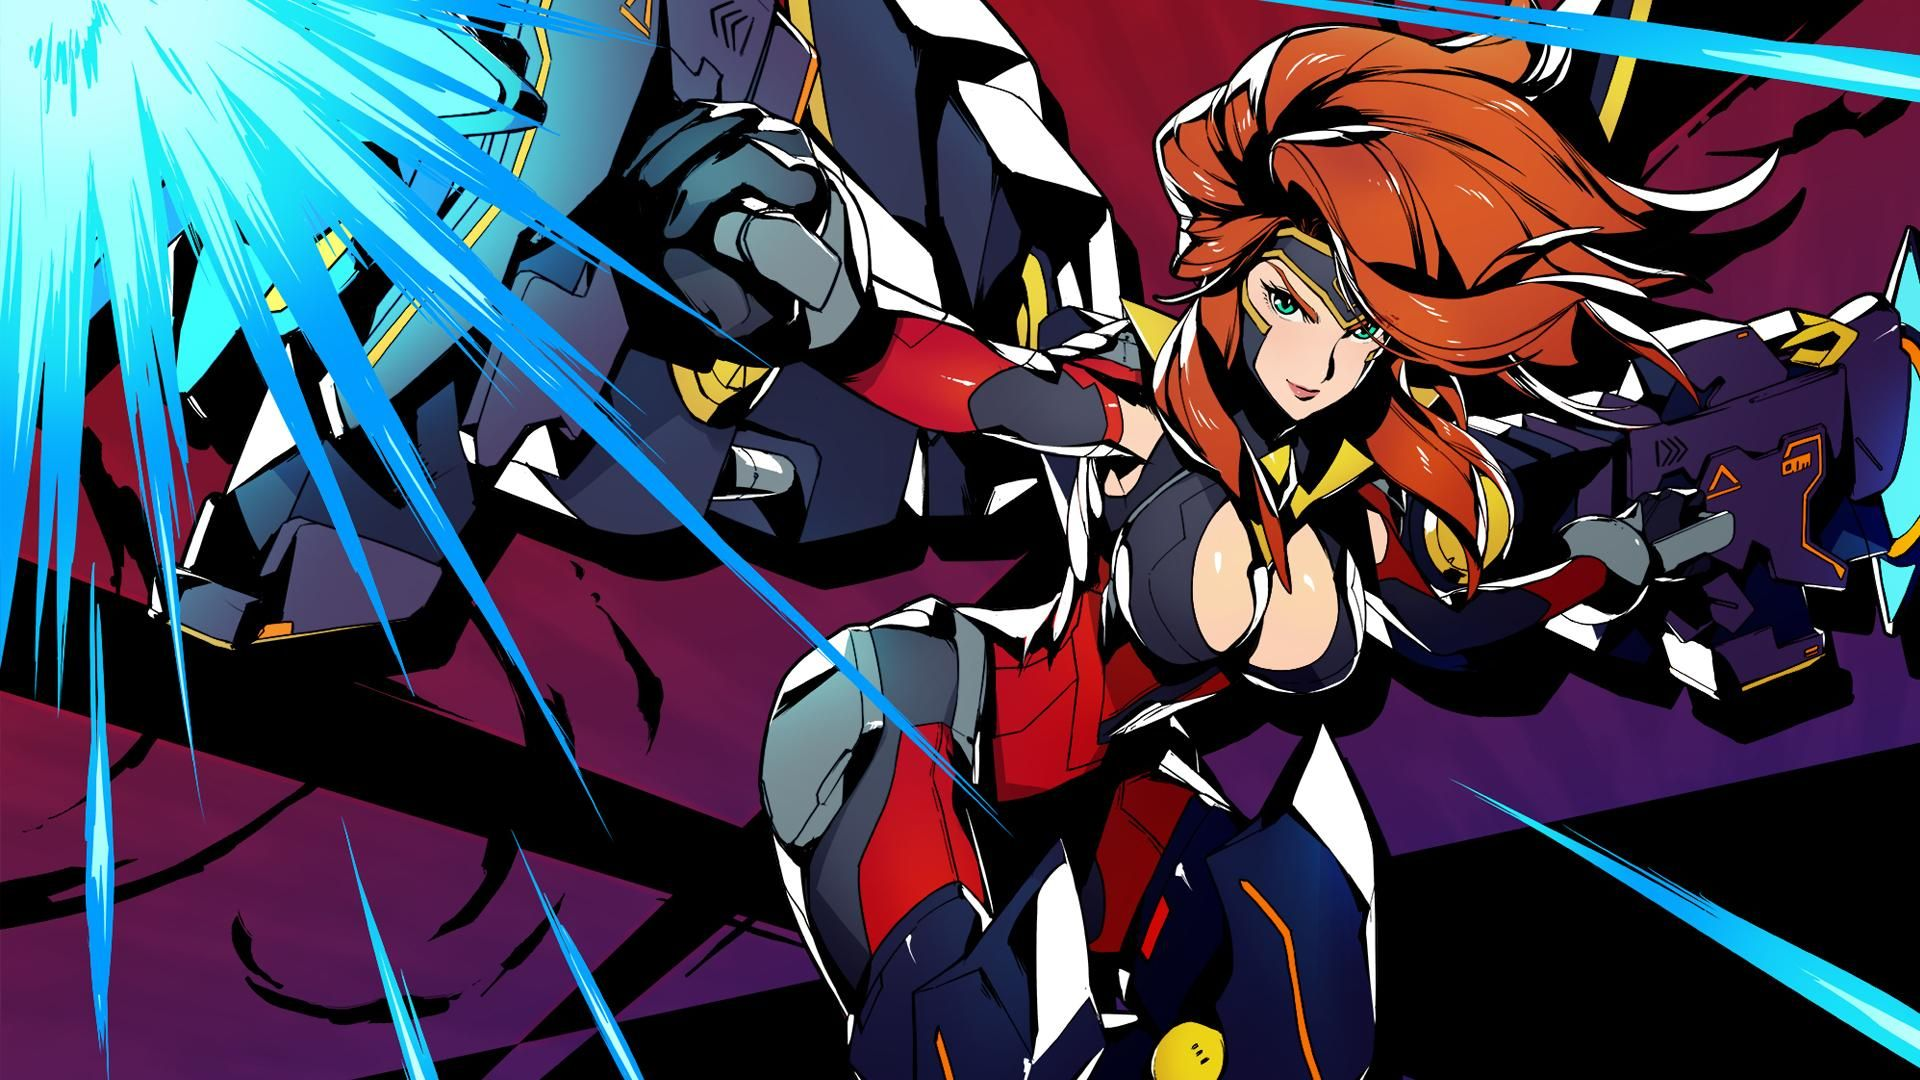 GG MF anime style   Lol league of legends, Miss fortune, League of legends